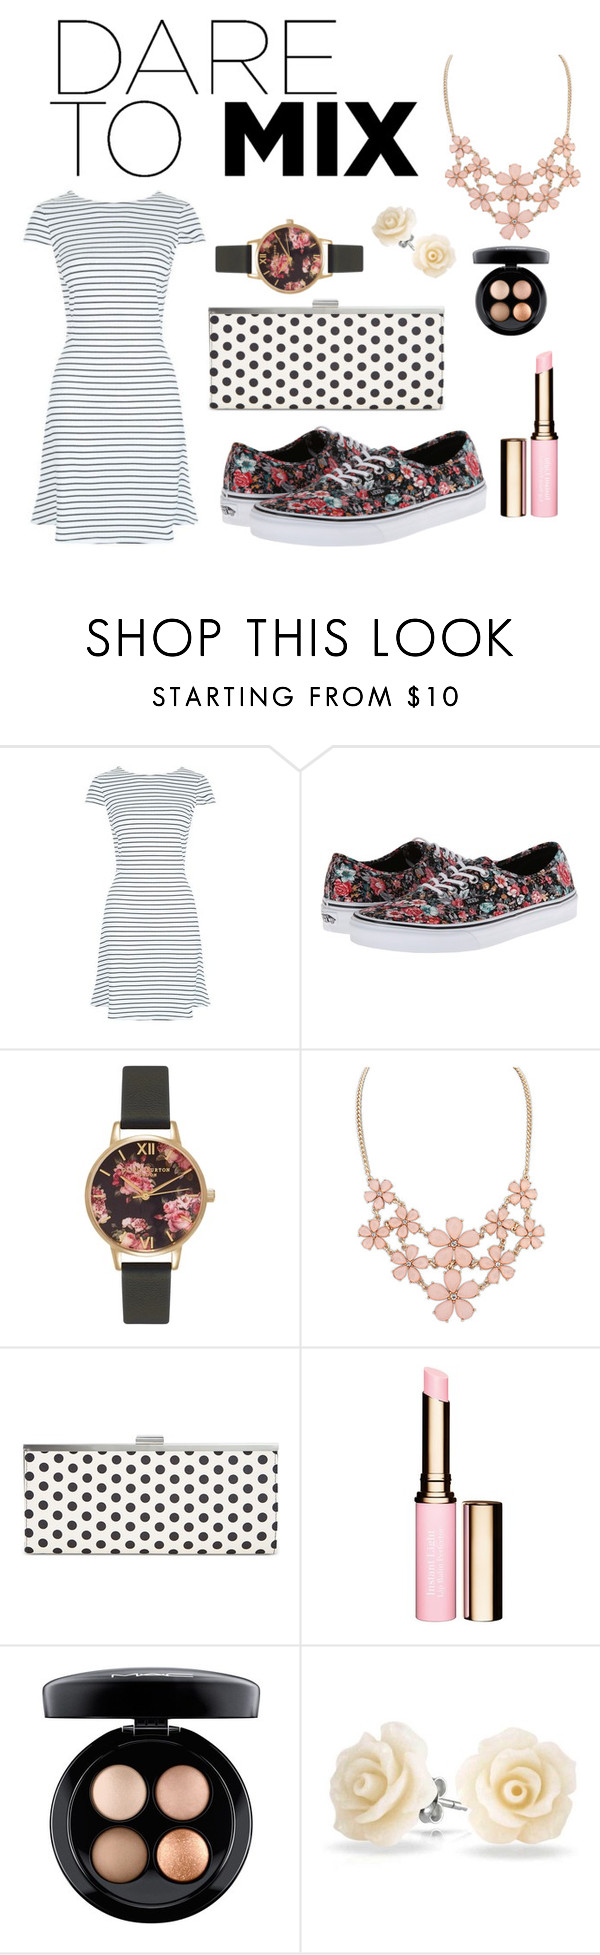 """""""Dare to Mix"""" by jayds73 ❤ liked on Polyvore featuring New Look, Vans, Olivia Burton, Style & Co., Clarins, MAC Cosmetics, Bling Jewelry and patternmixing"""